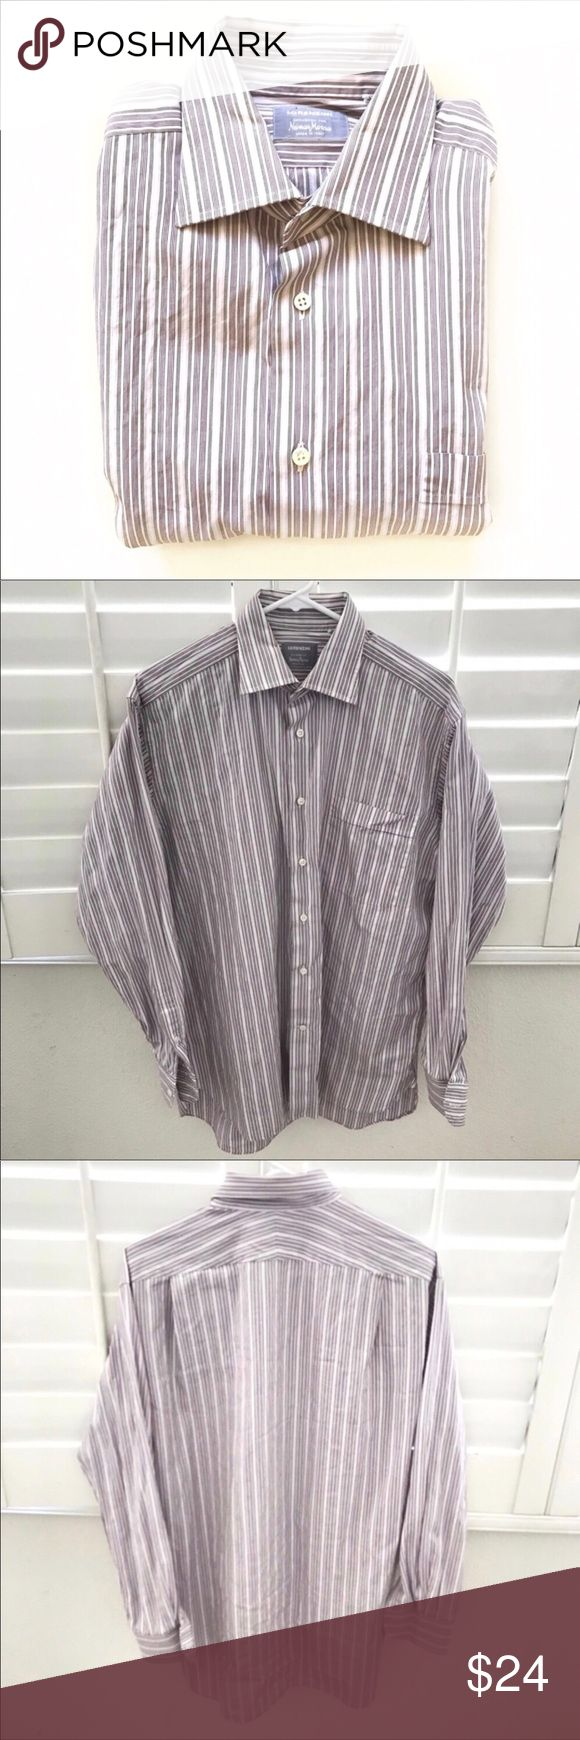 """NEIMAN MARCUS white striped dress shirt Size 16 👔 Pit to pit 23"""" 👔 Sleeve 24"""" 👔 Shoulder 19"""" 👔 Length 34""""  Tags : white , pink , striped , oxford shirt , work , weekend , special occasion, wedding , date , night out , school dance , prom , homecoming, holiday , Father's Day , corporate Halloween costume idea Neiman Marcus Shirts Dress Shirts"""